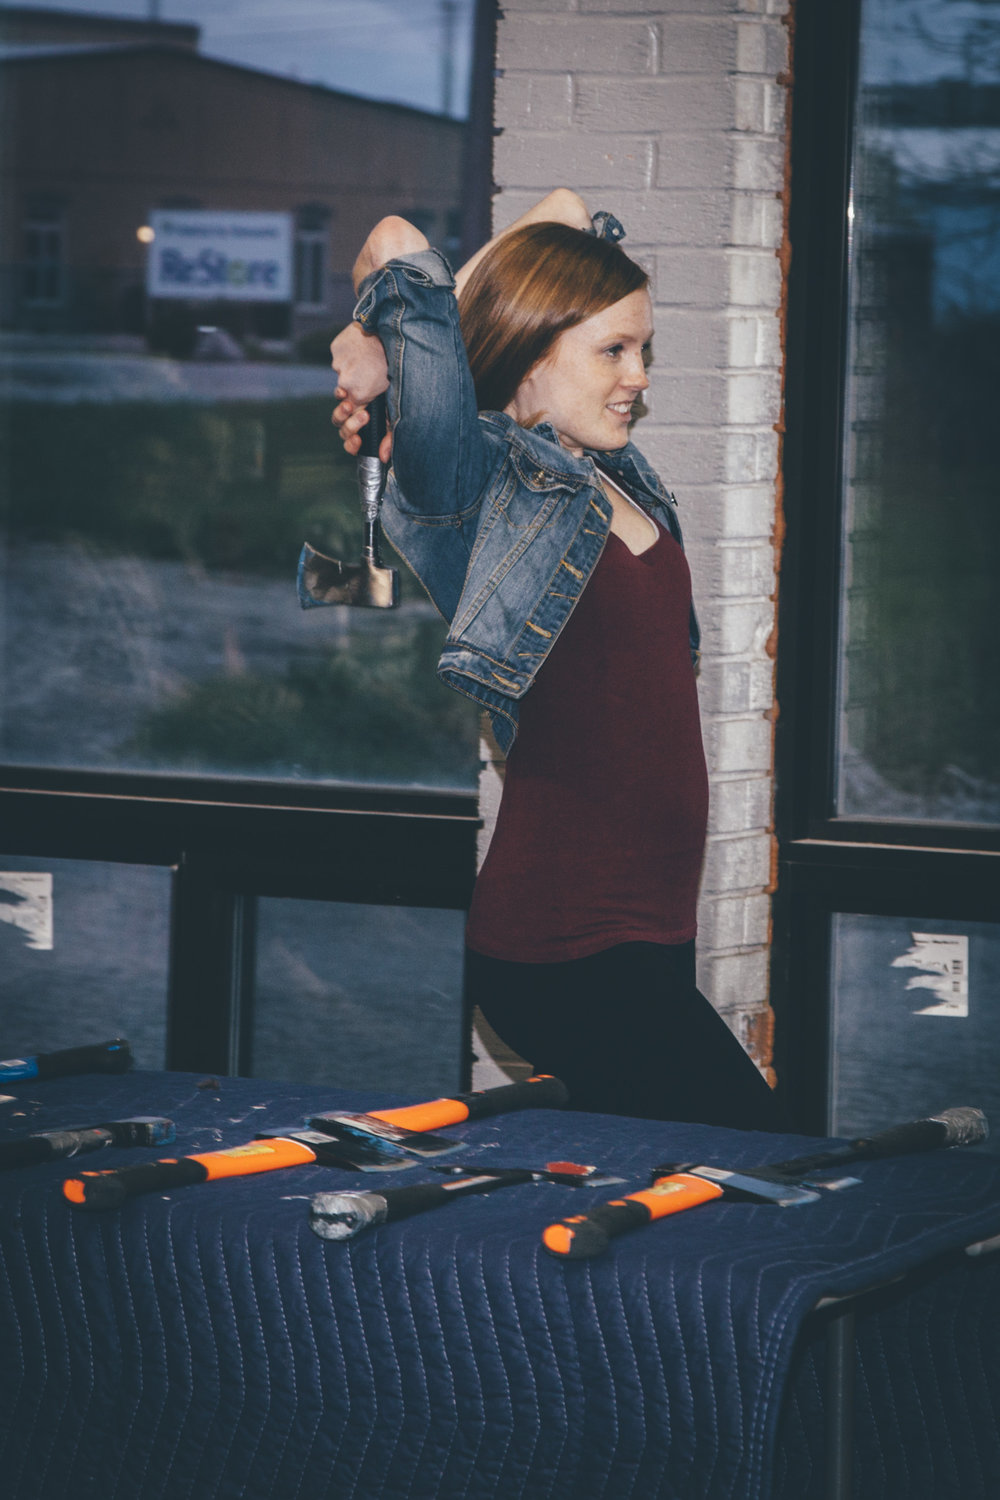 axe throwing-6.jpg